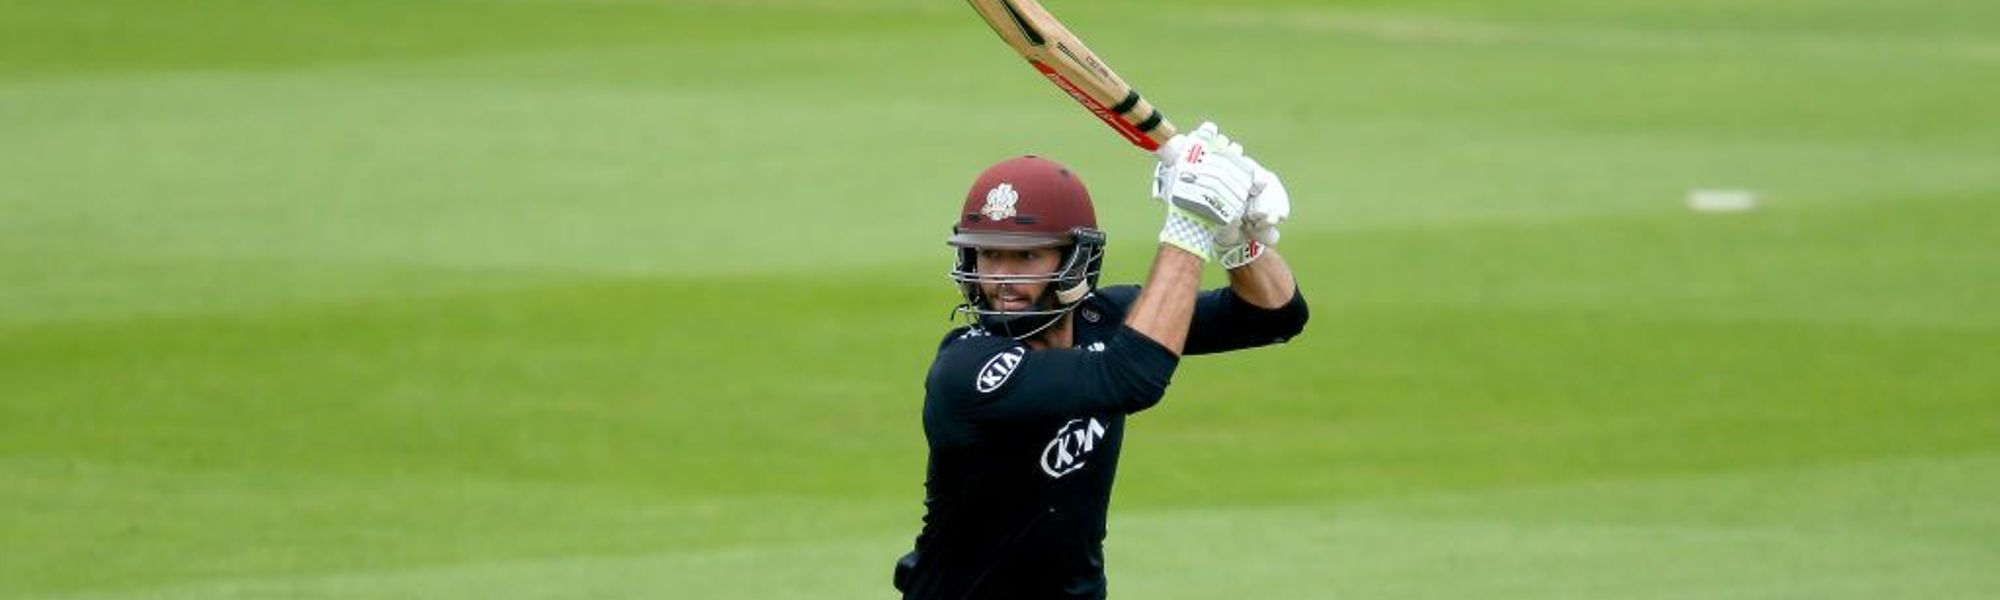 e912ae057c0 Foakes called up to England ODI squad in place of injured Billings